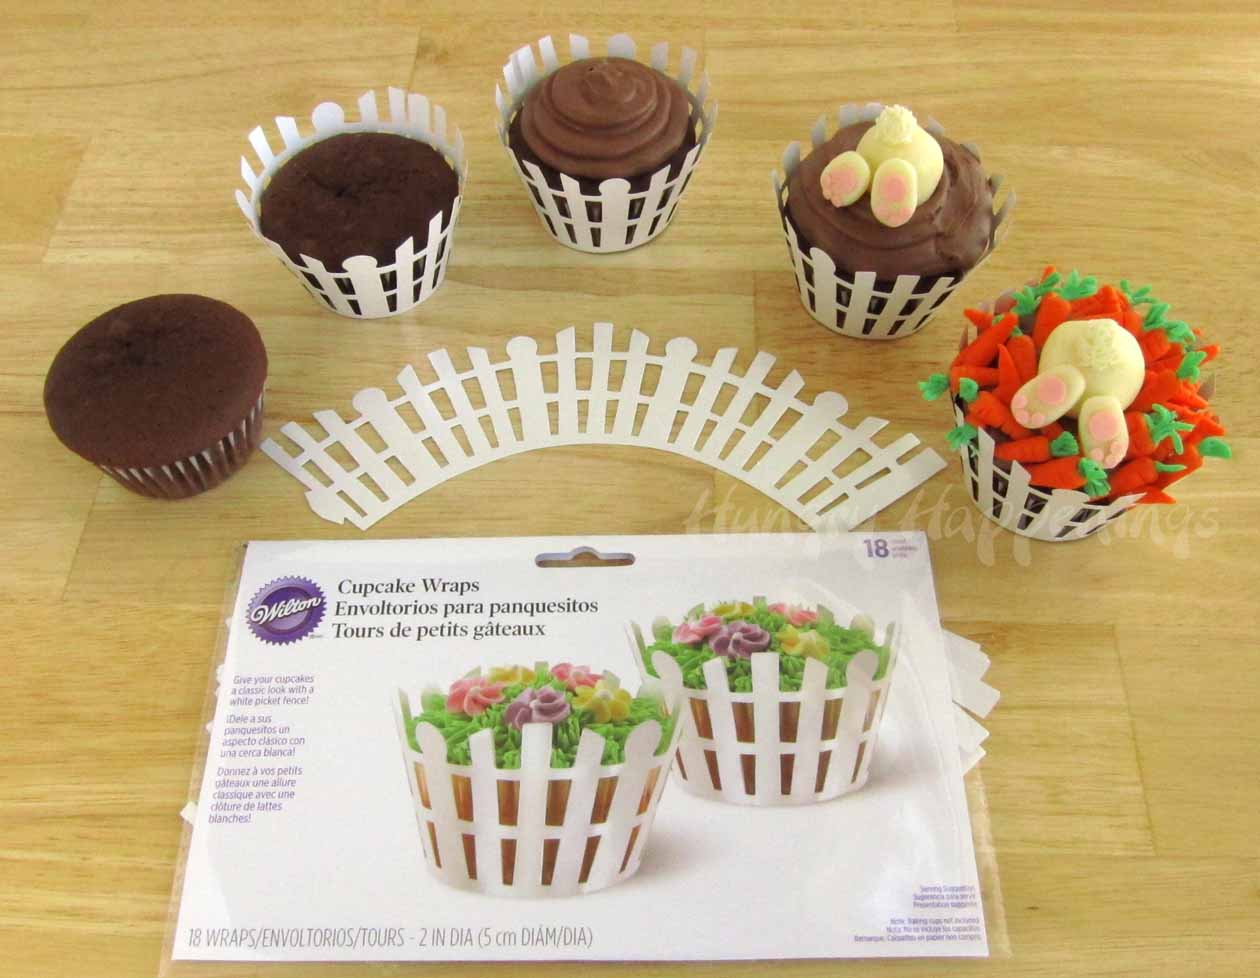 Ravenous Rabbit Cupcakes - Hungry Happenings Easter Recipes